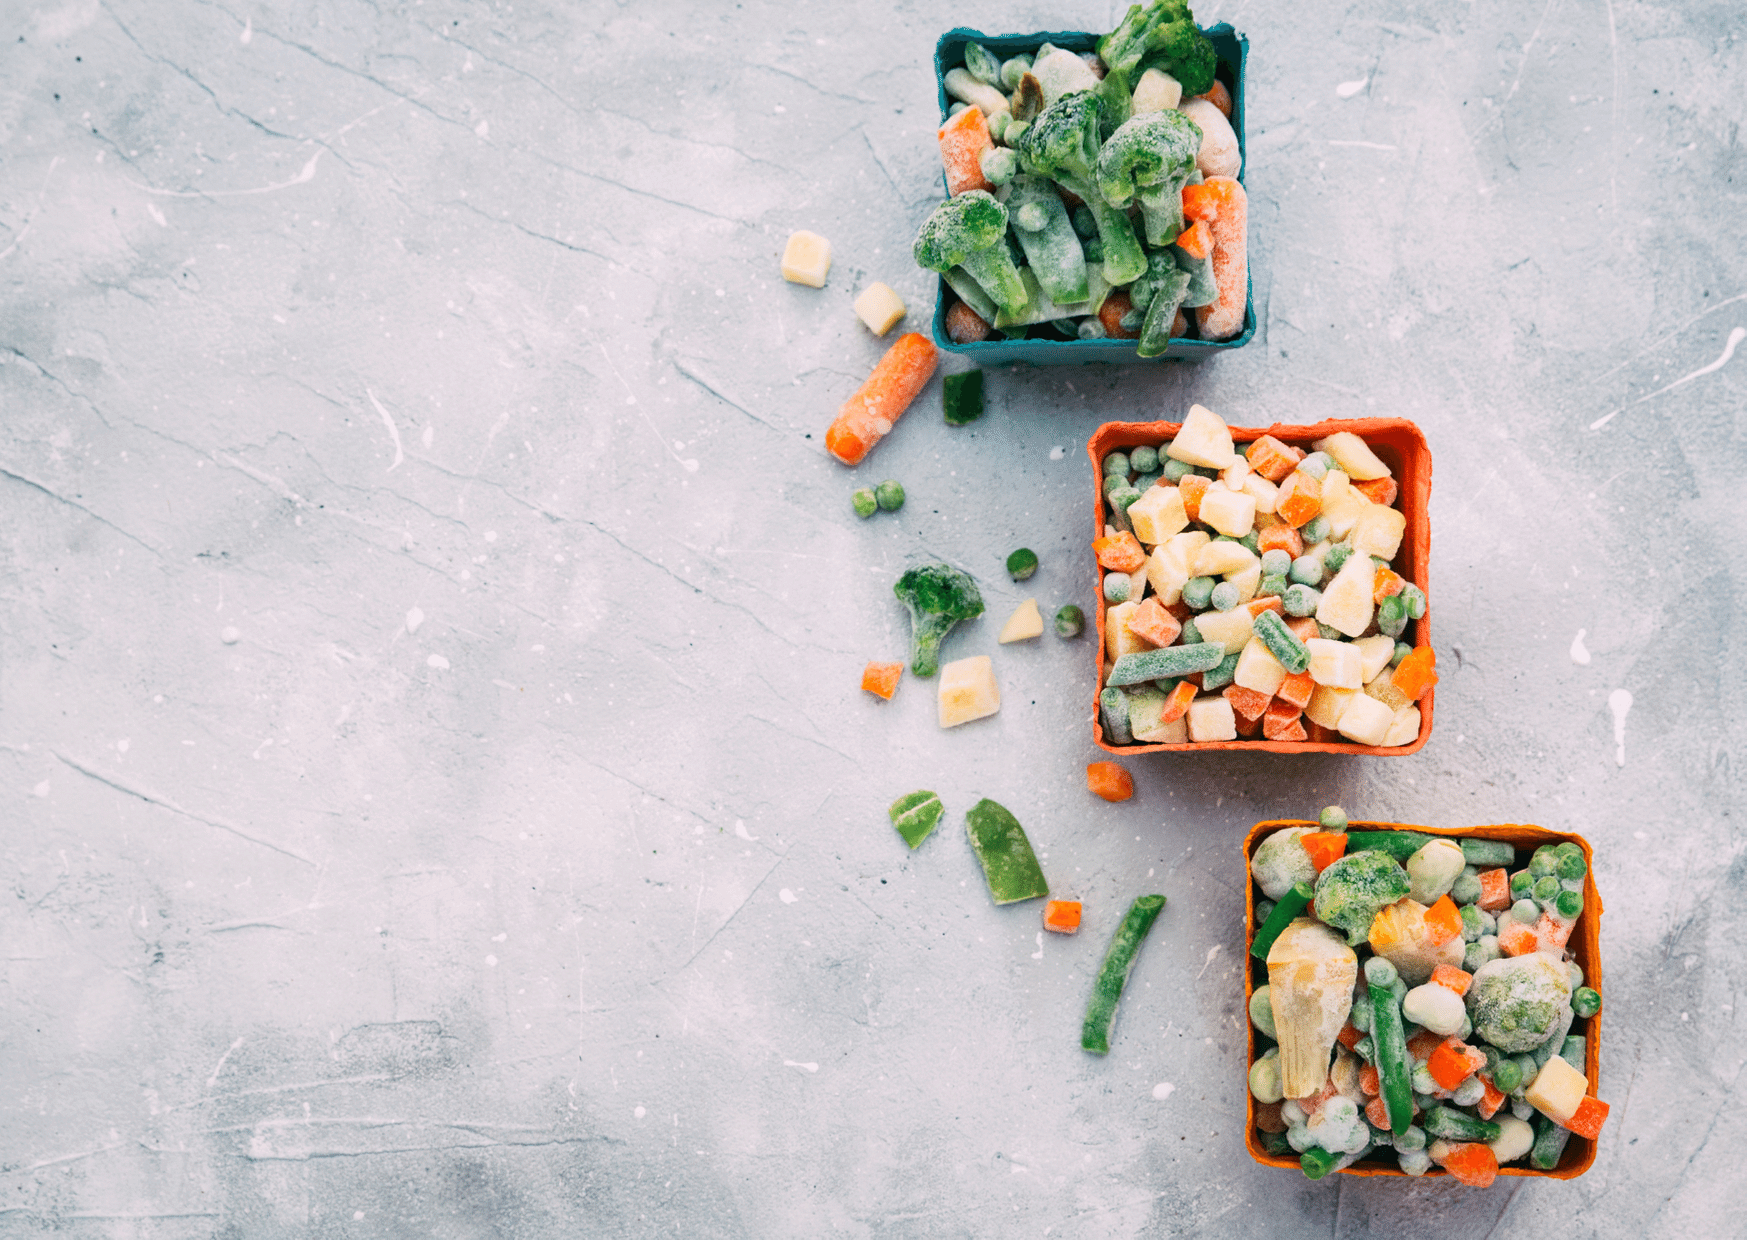 Are frozen vegetables good or bad